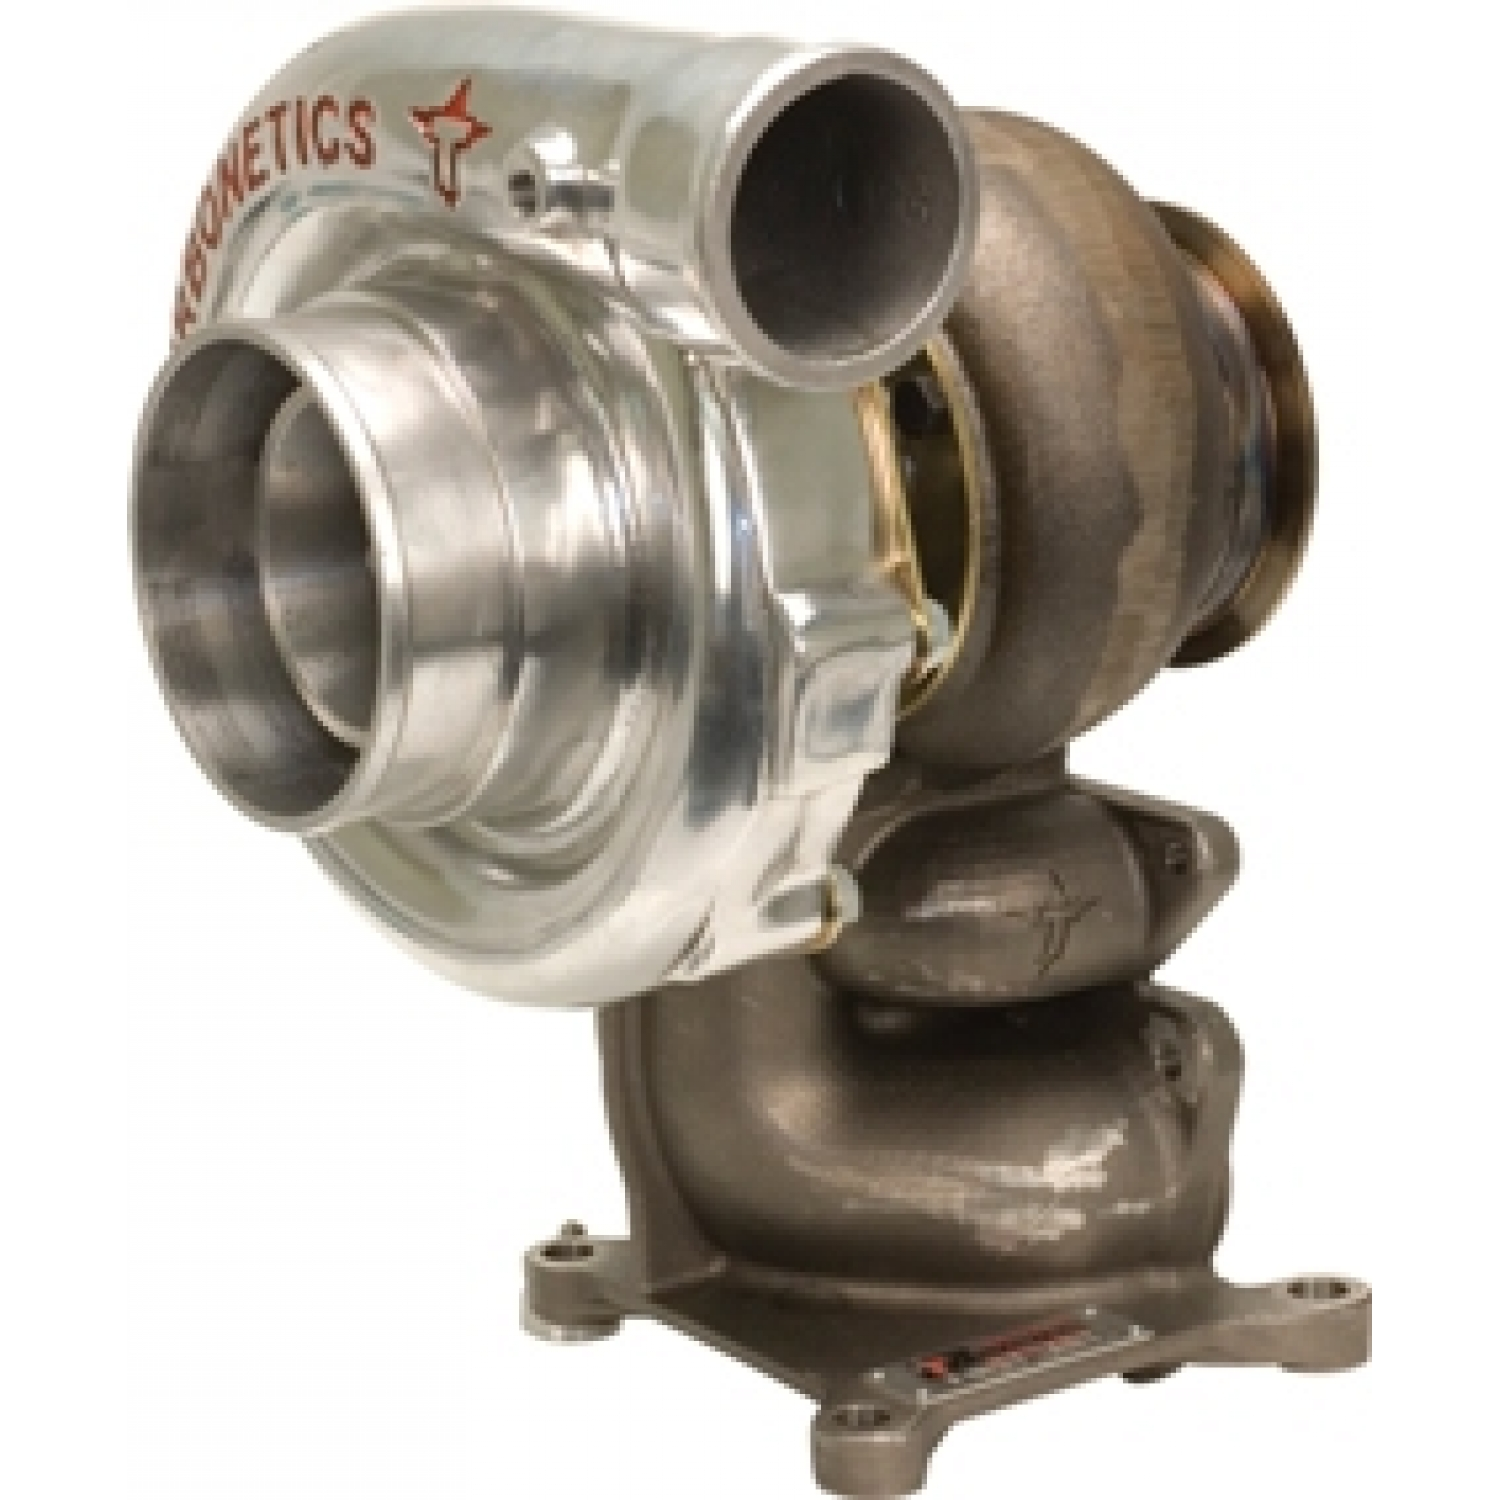 Agp Turbochargers Inc Store: Pedestal Kit Duramax 01-07 (Turbo Not Included